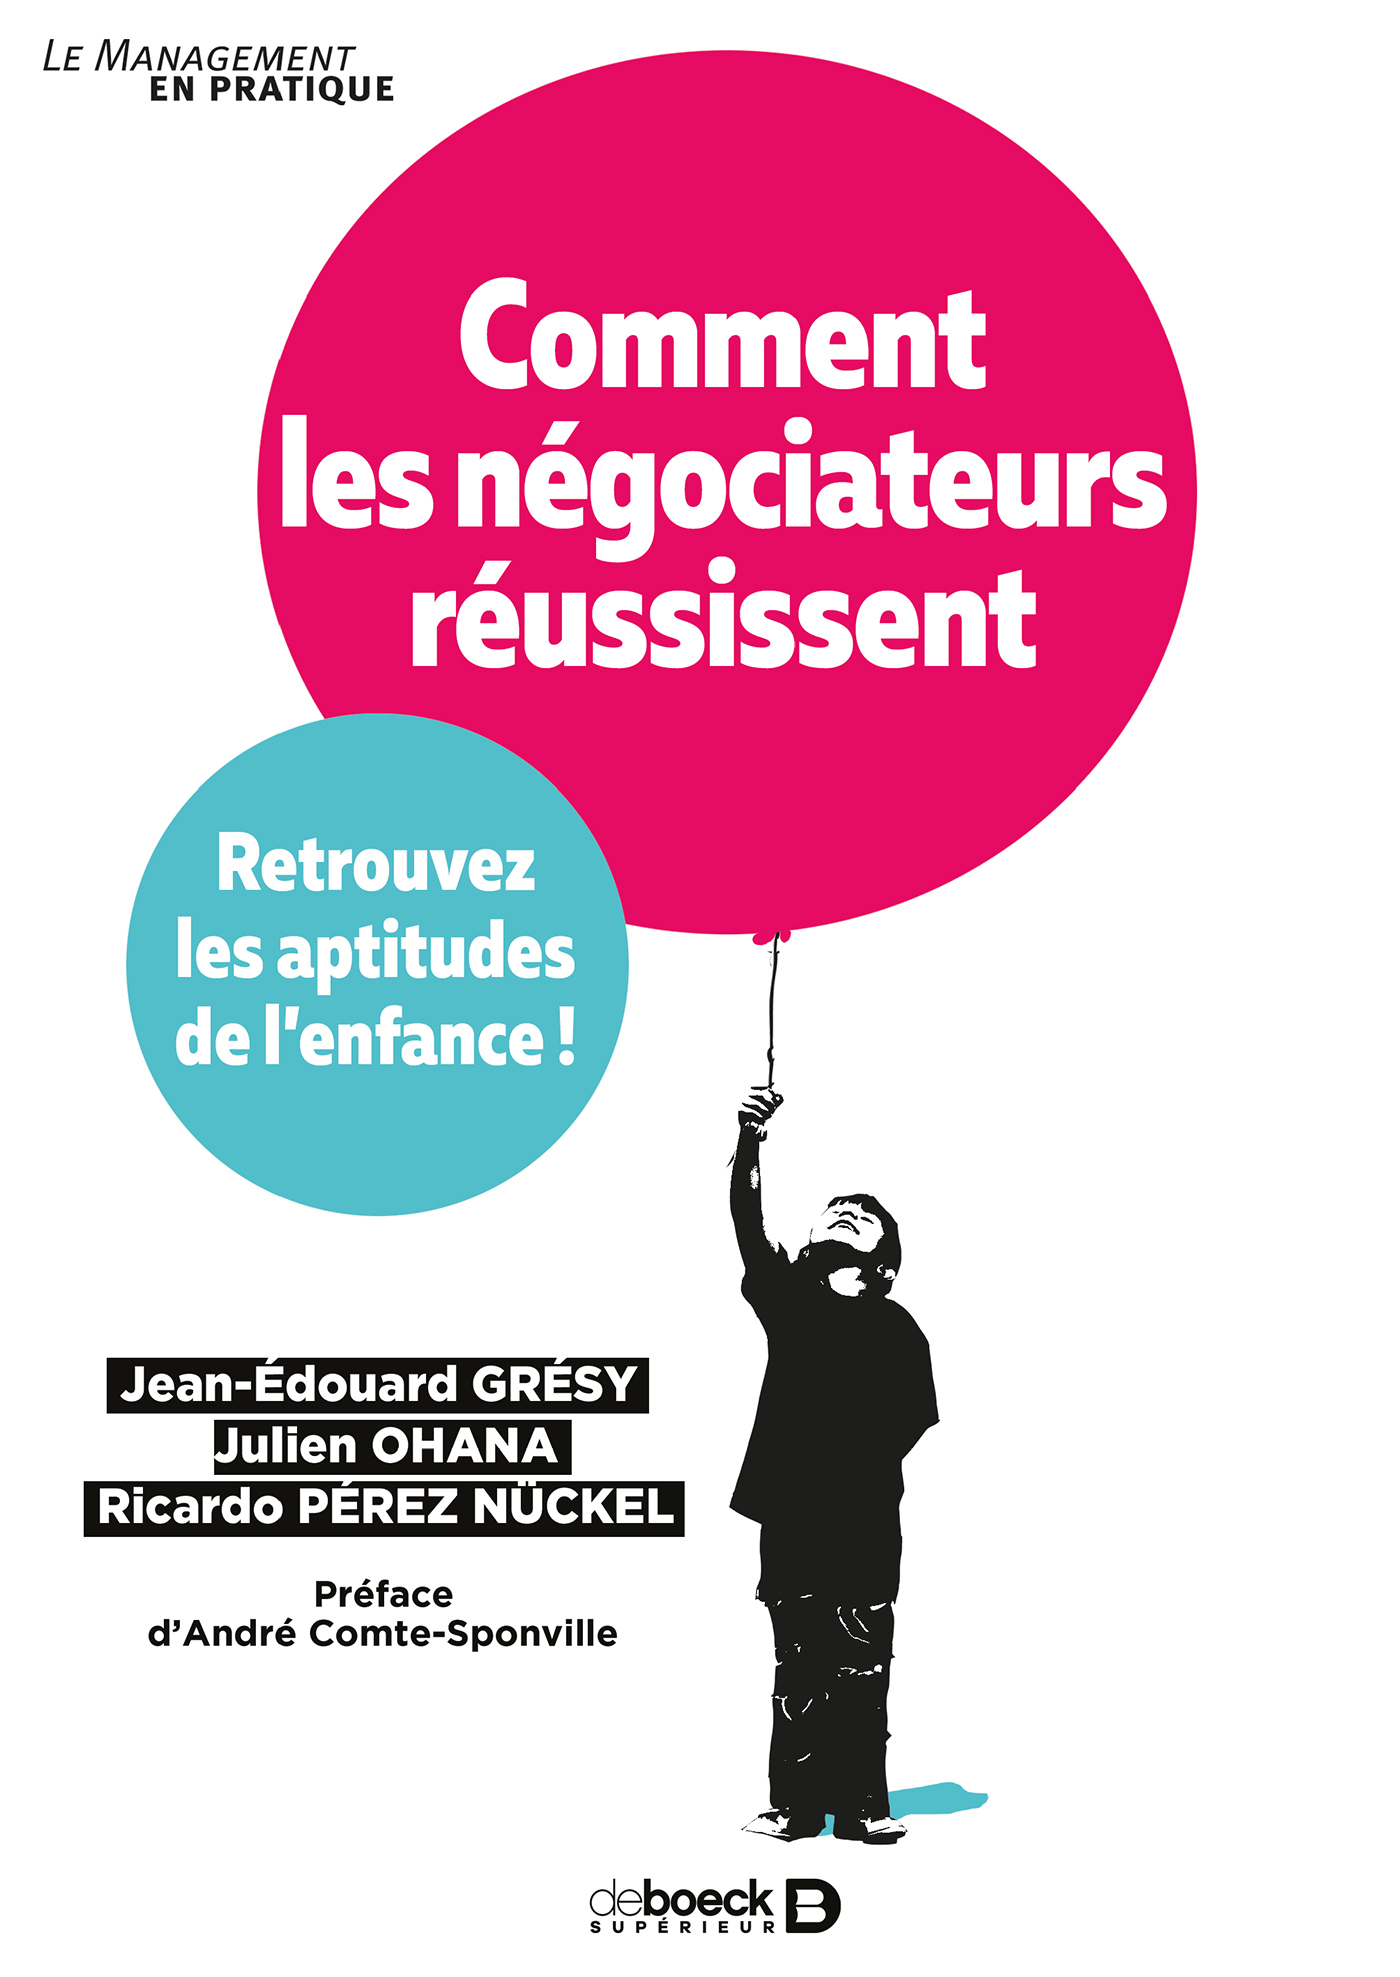 COMMENT LES NEGOCIATEURS REUSSISSENT